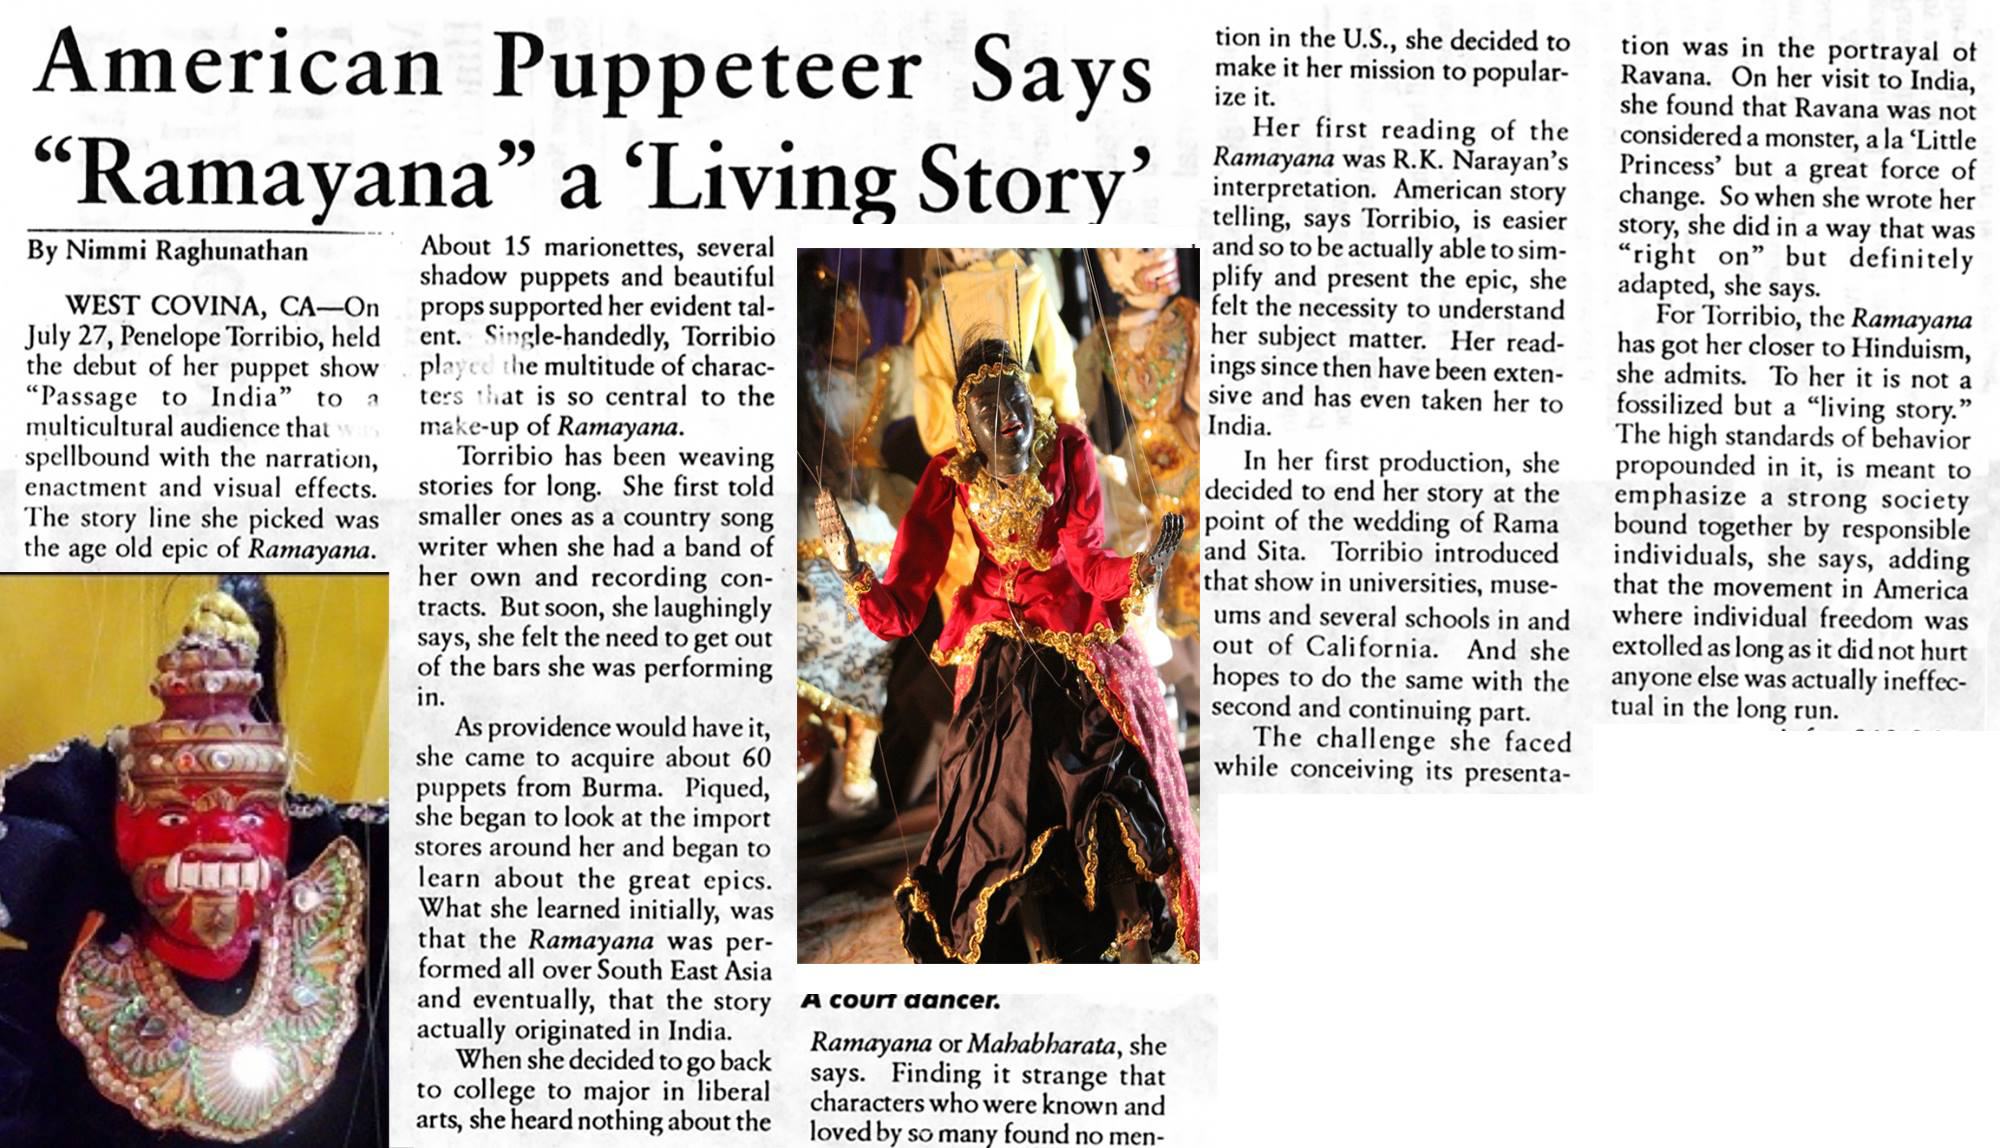 Ramayana is a living story, Penelope's marionette and shadow puppet adaptation of the Ramayana